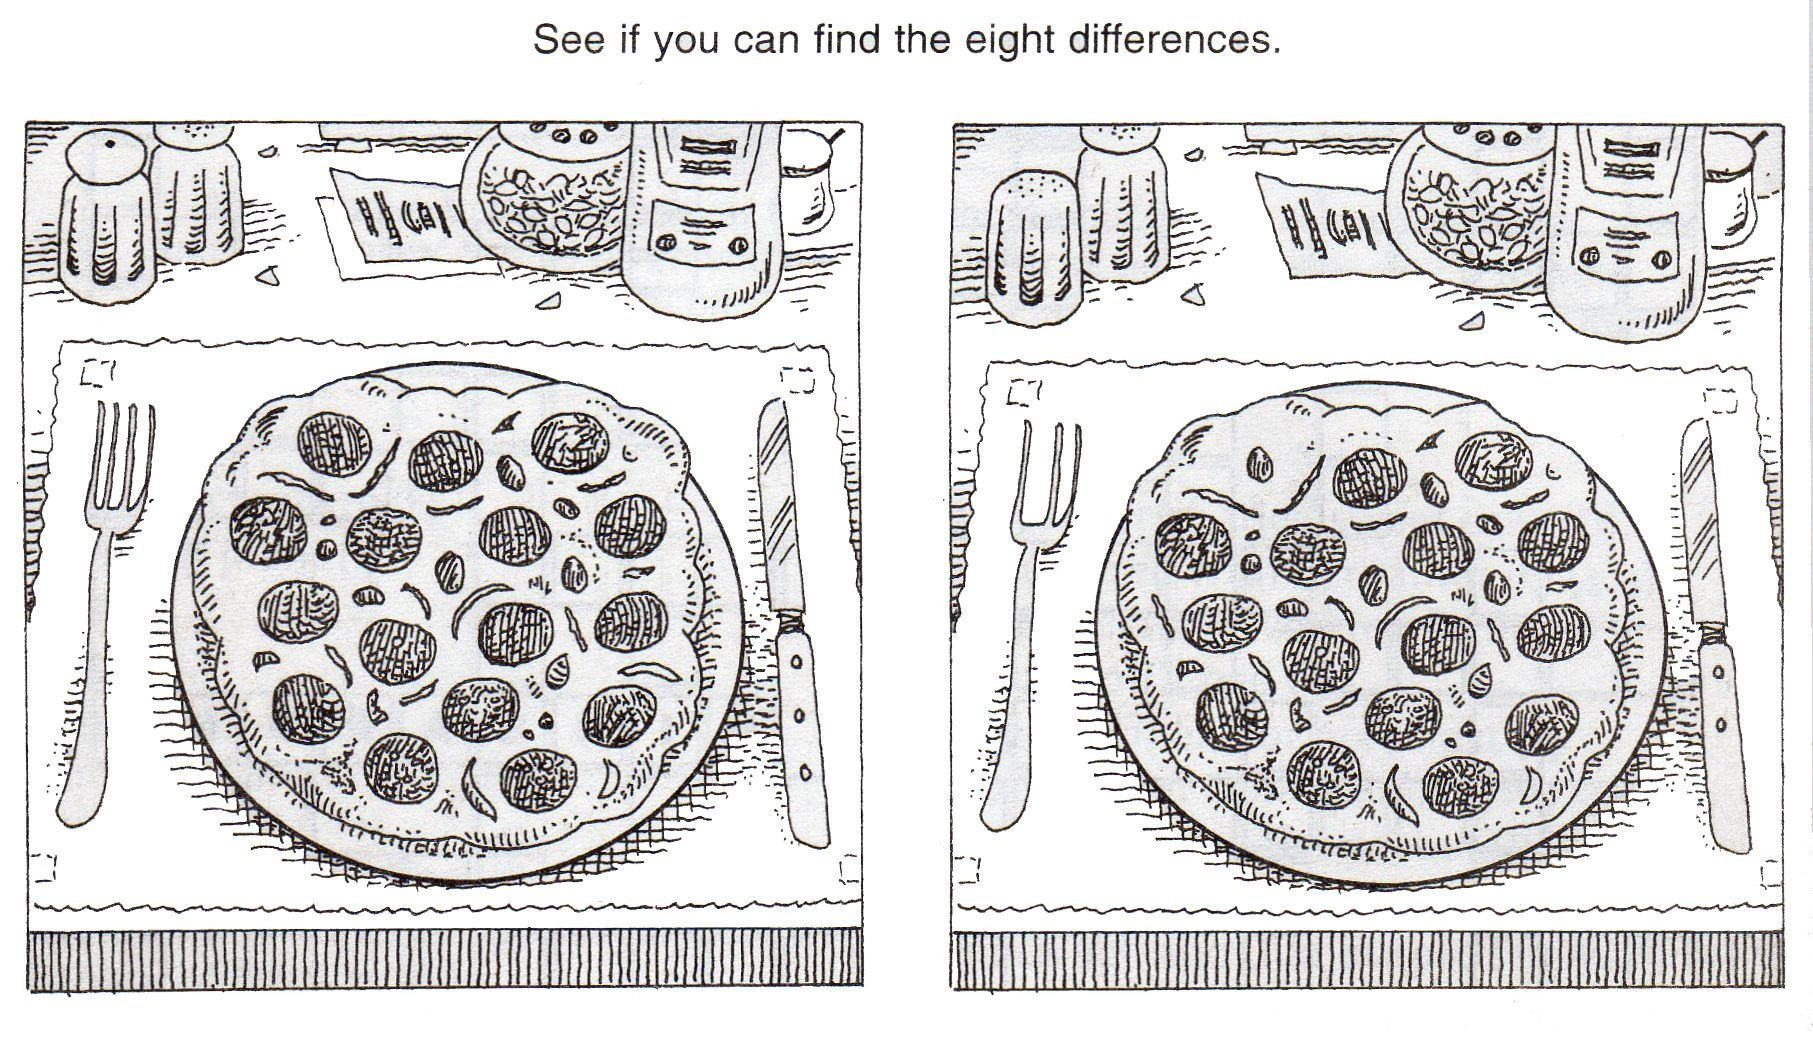 Free+Printable+Spot+The+Difference+Puzzles   Hg   Spot The - Free Printable Spot The Difference Worksheets